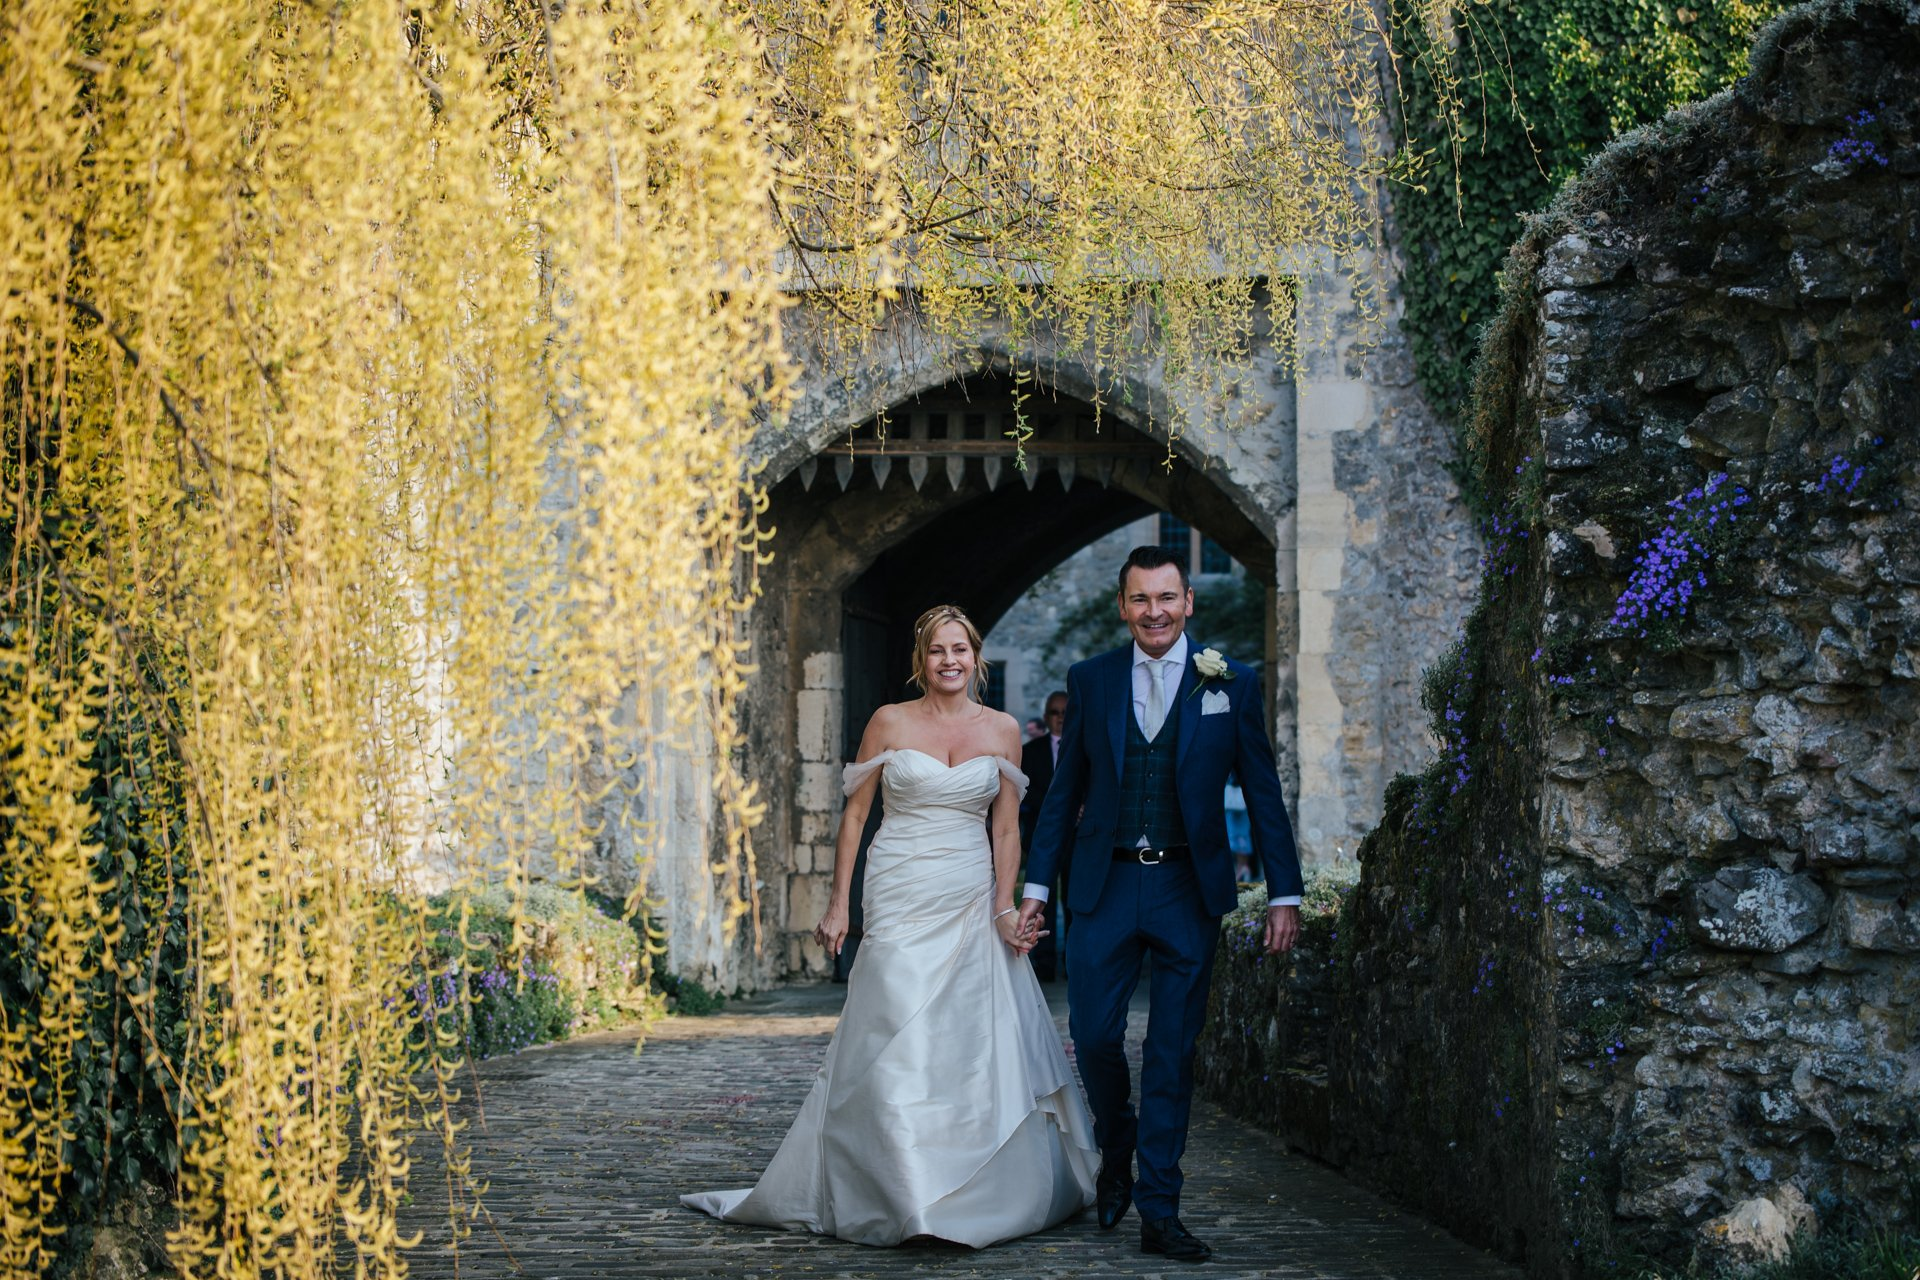 Bride and Groom leaving the gate of Allington Castle after their wedding ceremony